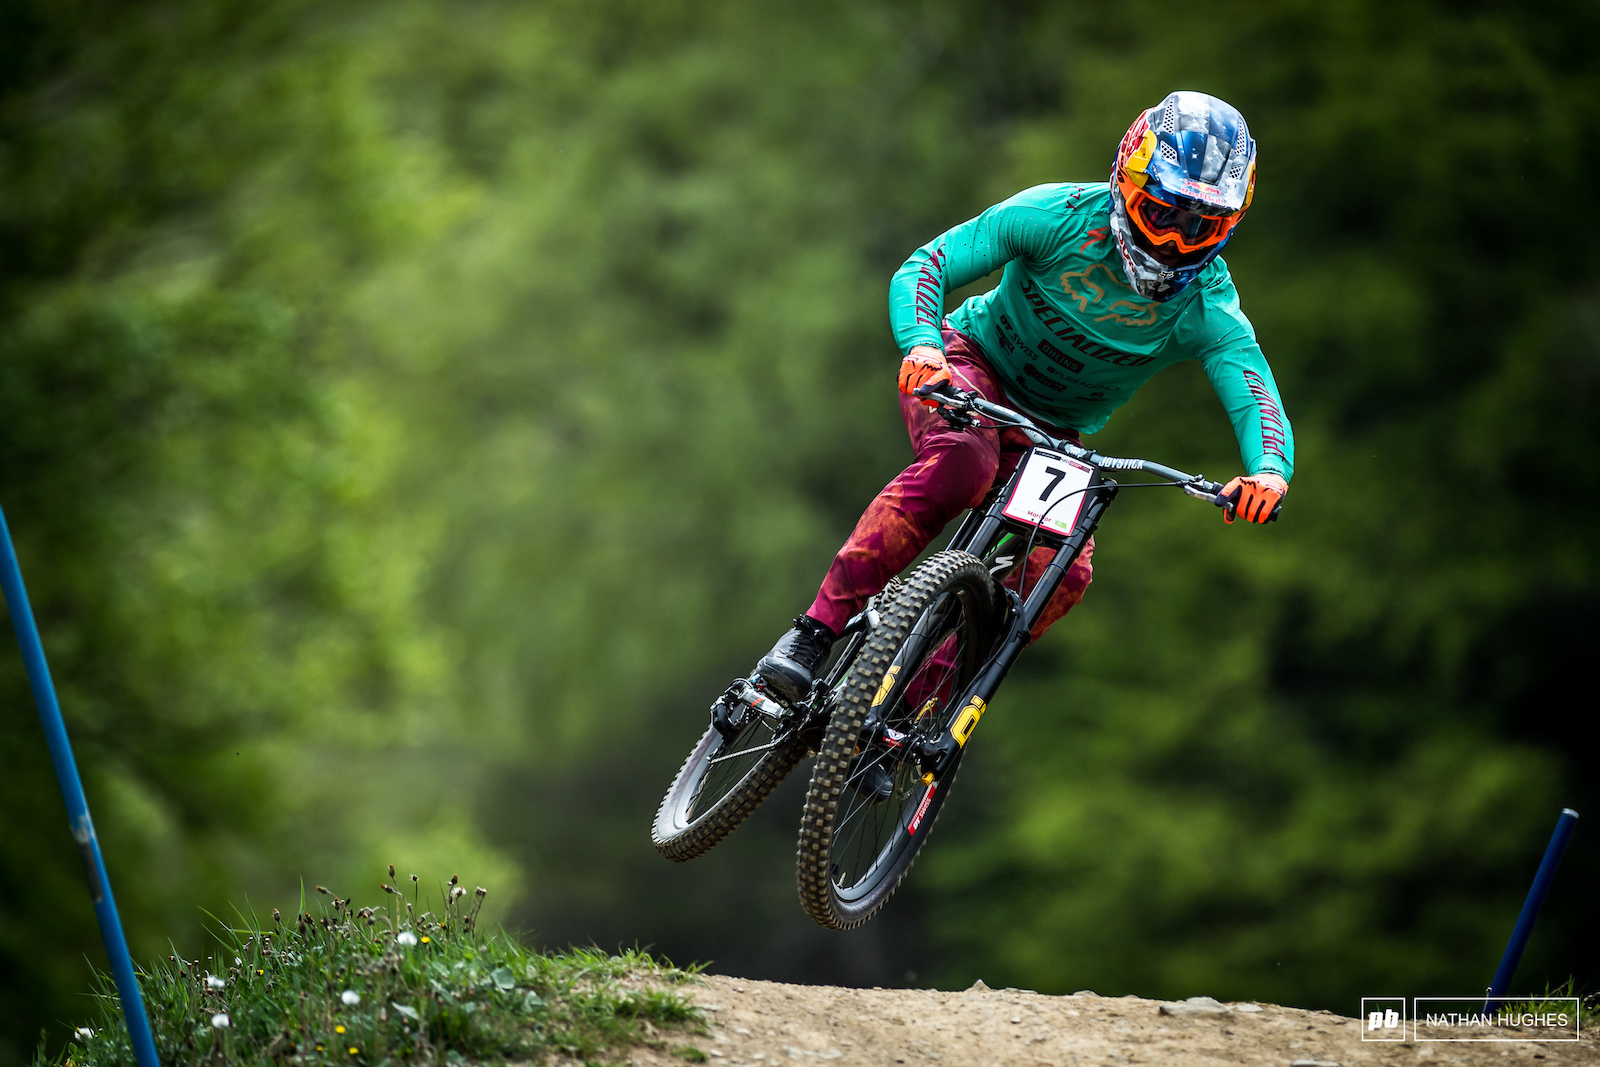 Multiple splashes of fresh color for fastest man on the hill today Loic Bruni.